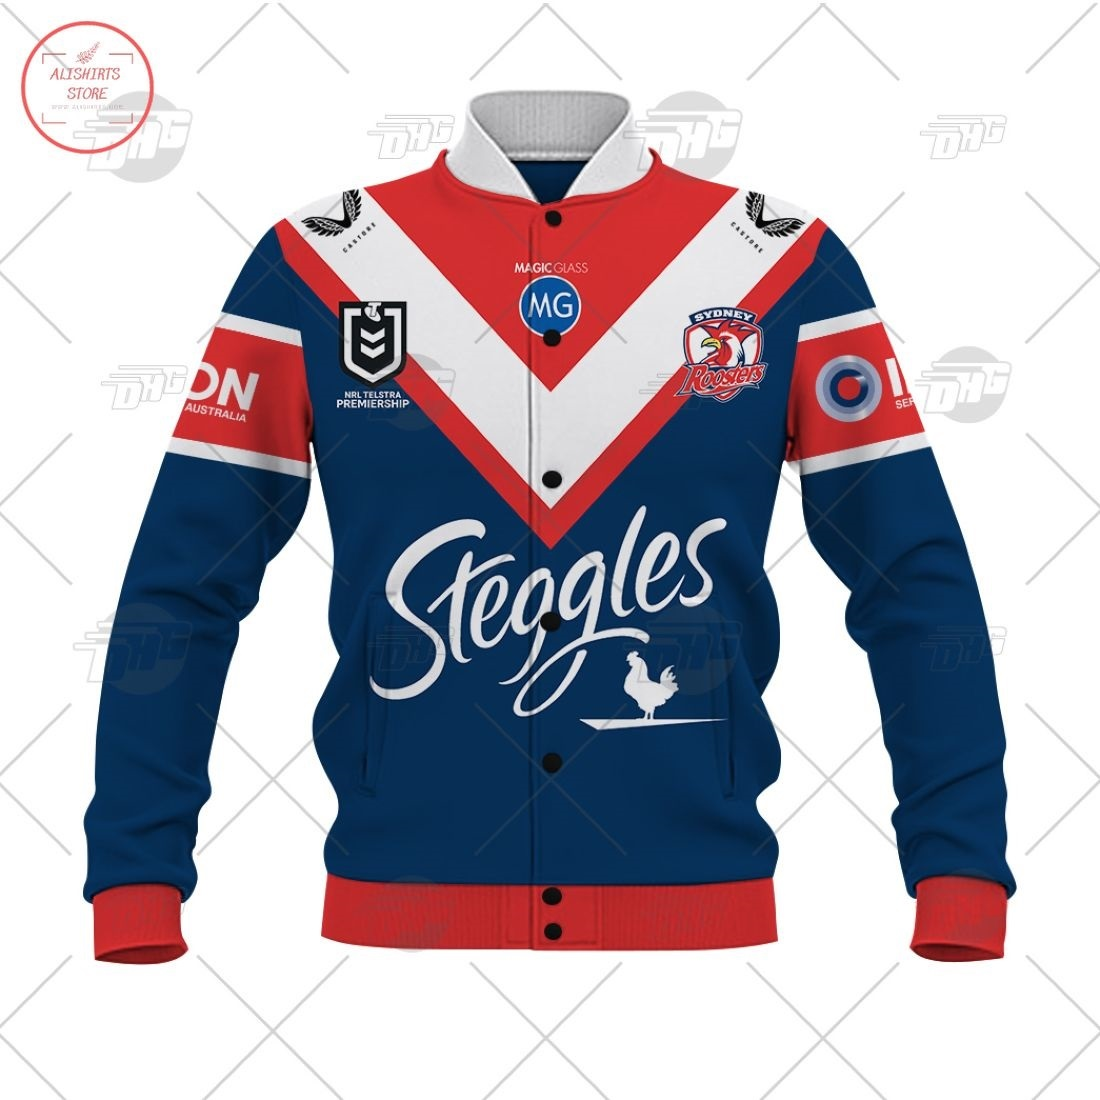 Personalized NRL Sydney Roosters 2021 Letterman Jacket